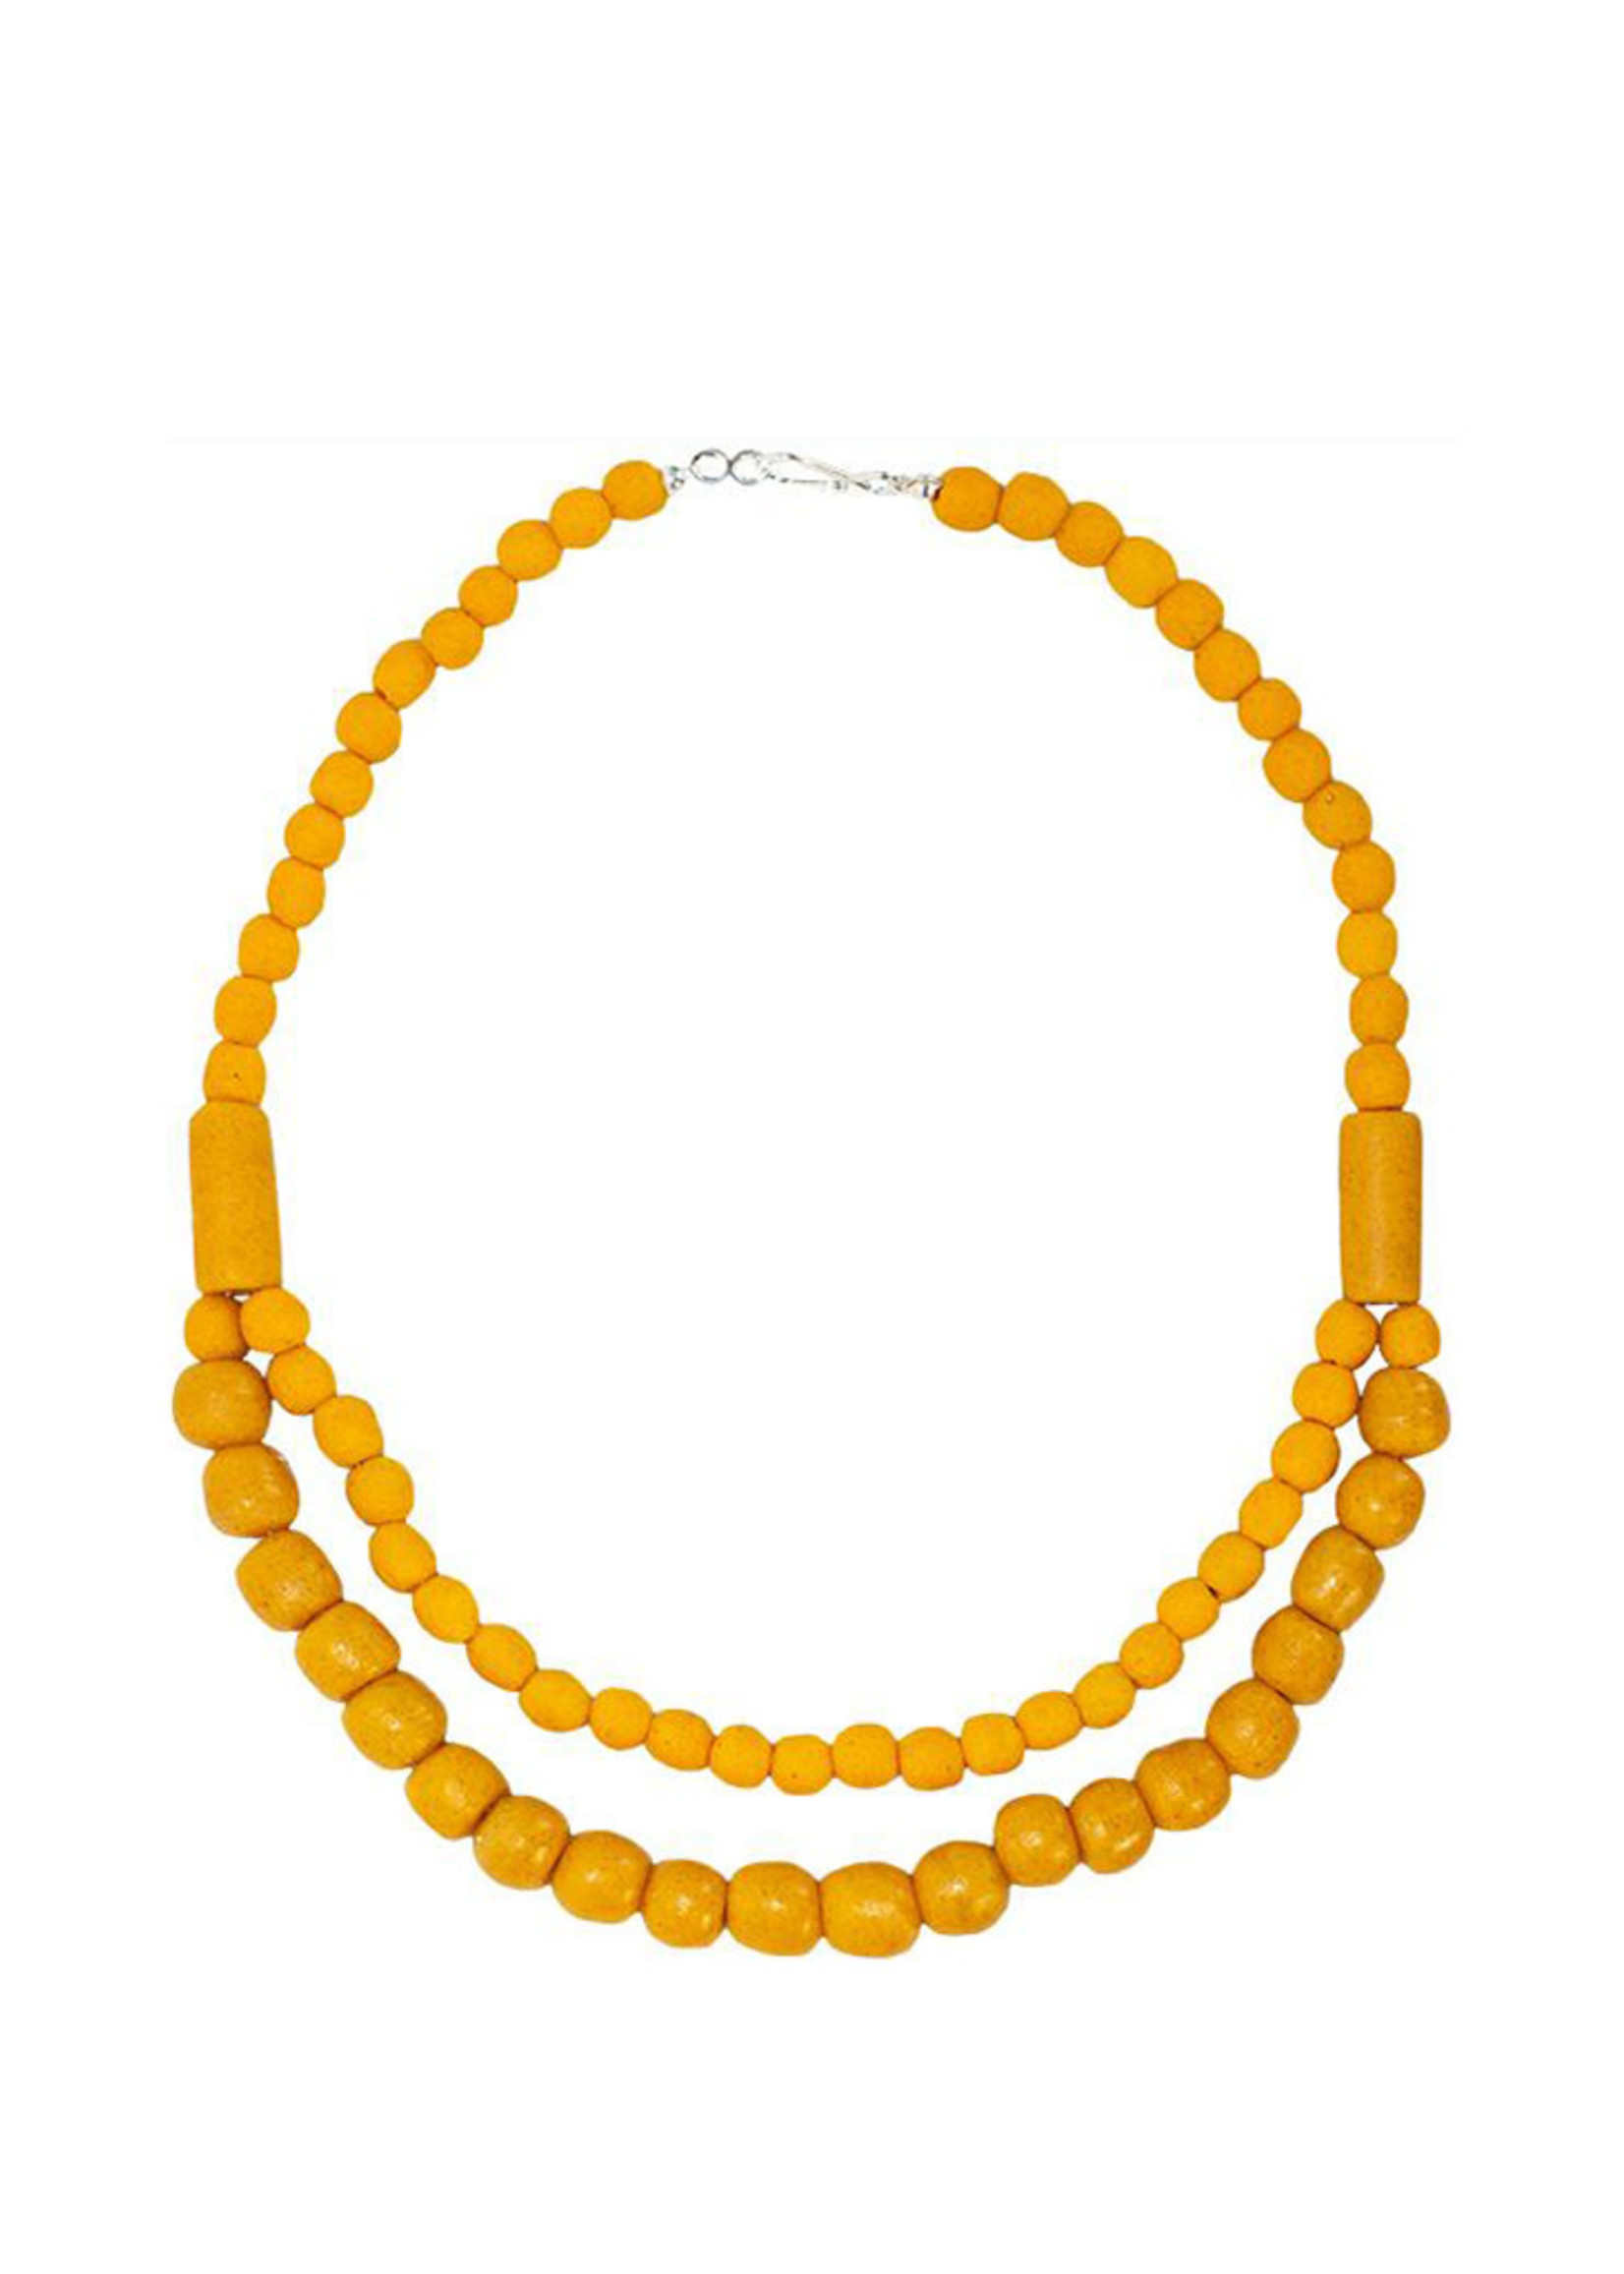 Global Mamas Pearls Statement Necklace